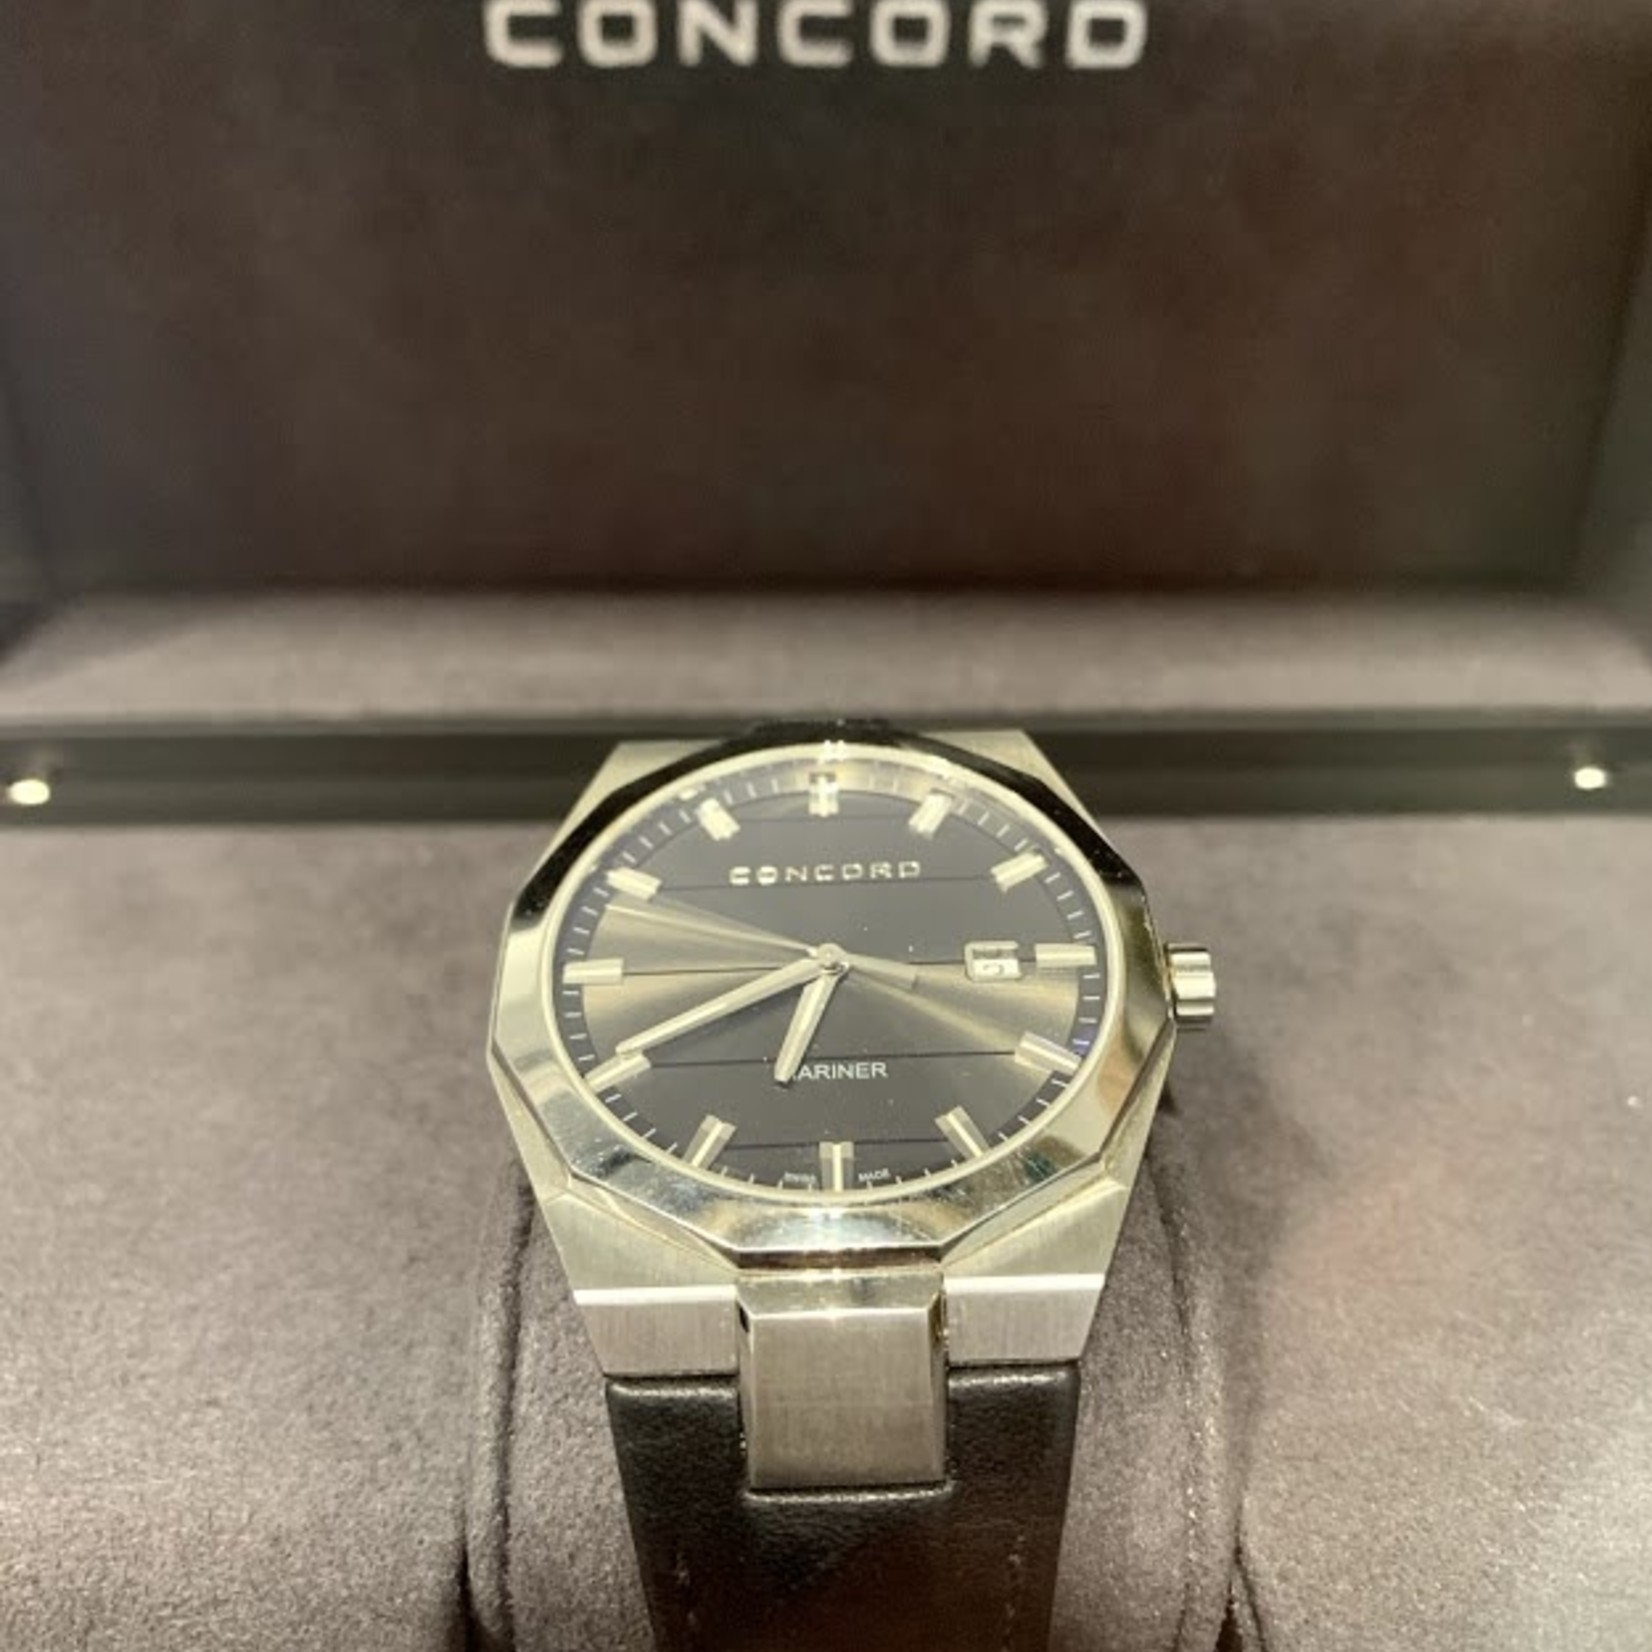 Concord Men's Watch *Open box, lightly used condition